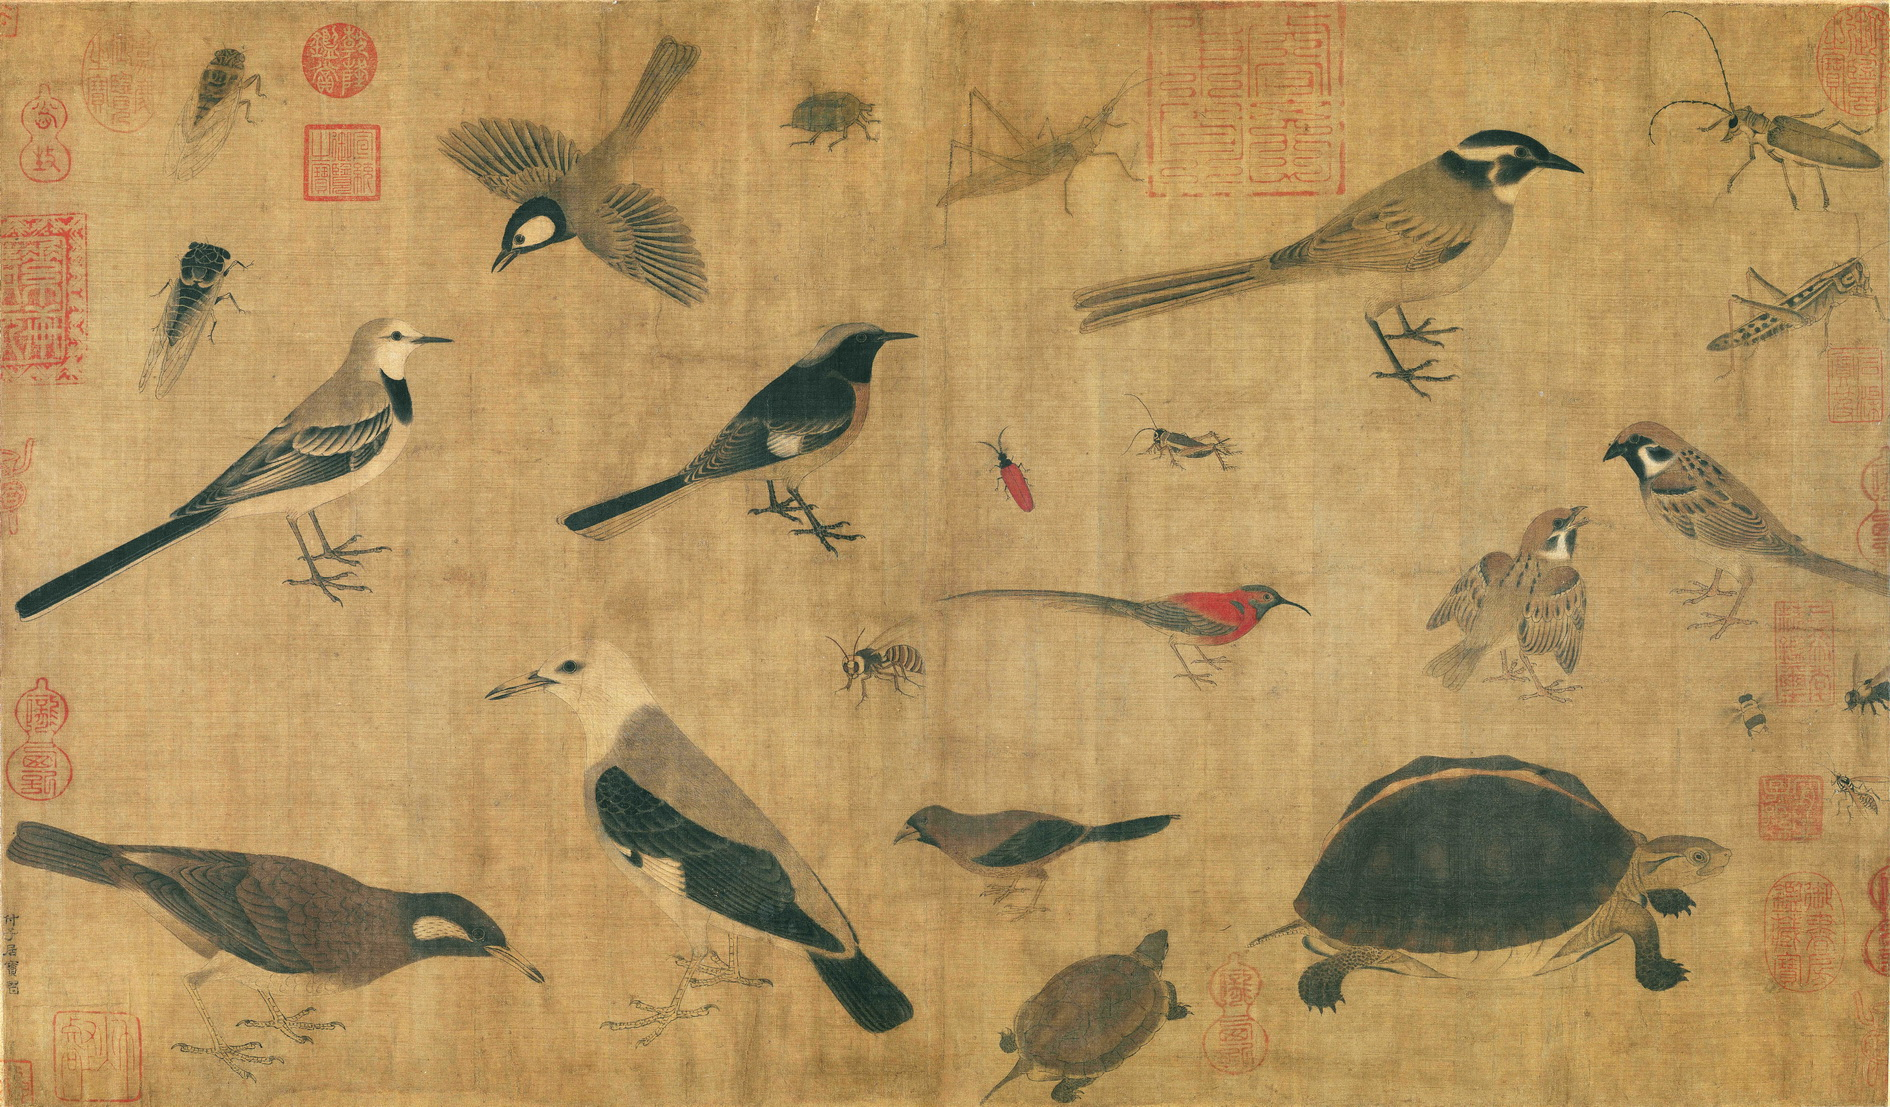 Huang-Quan-903-965-CE-Sketches-of-Birds-and-Insects